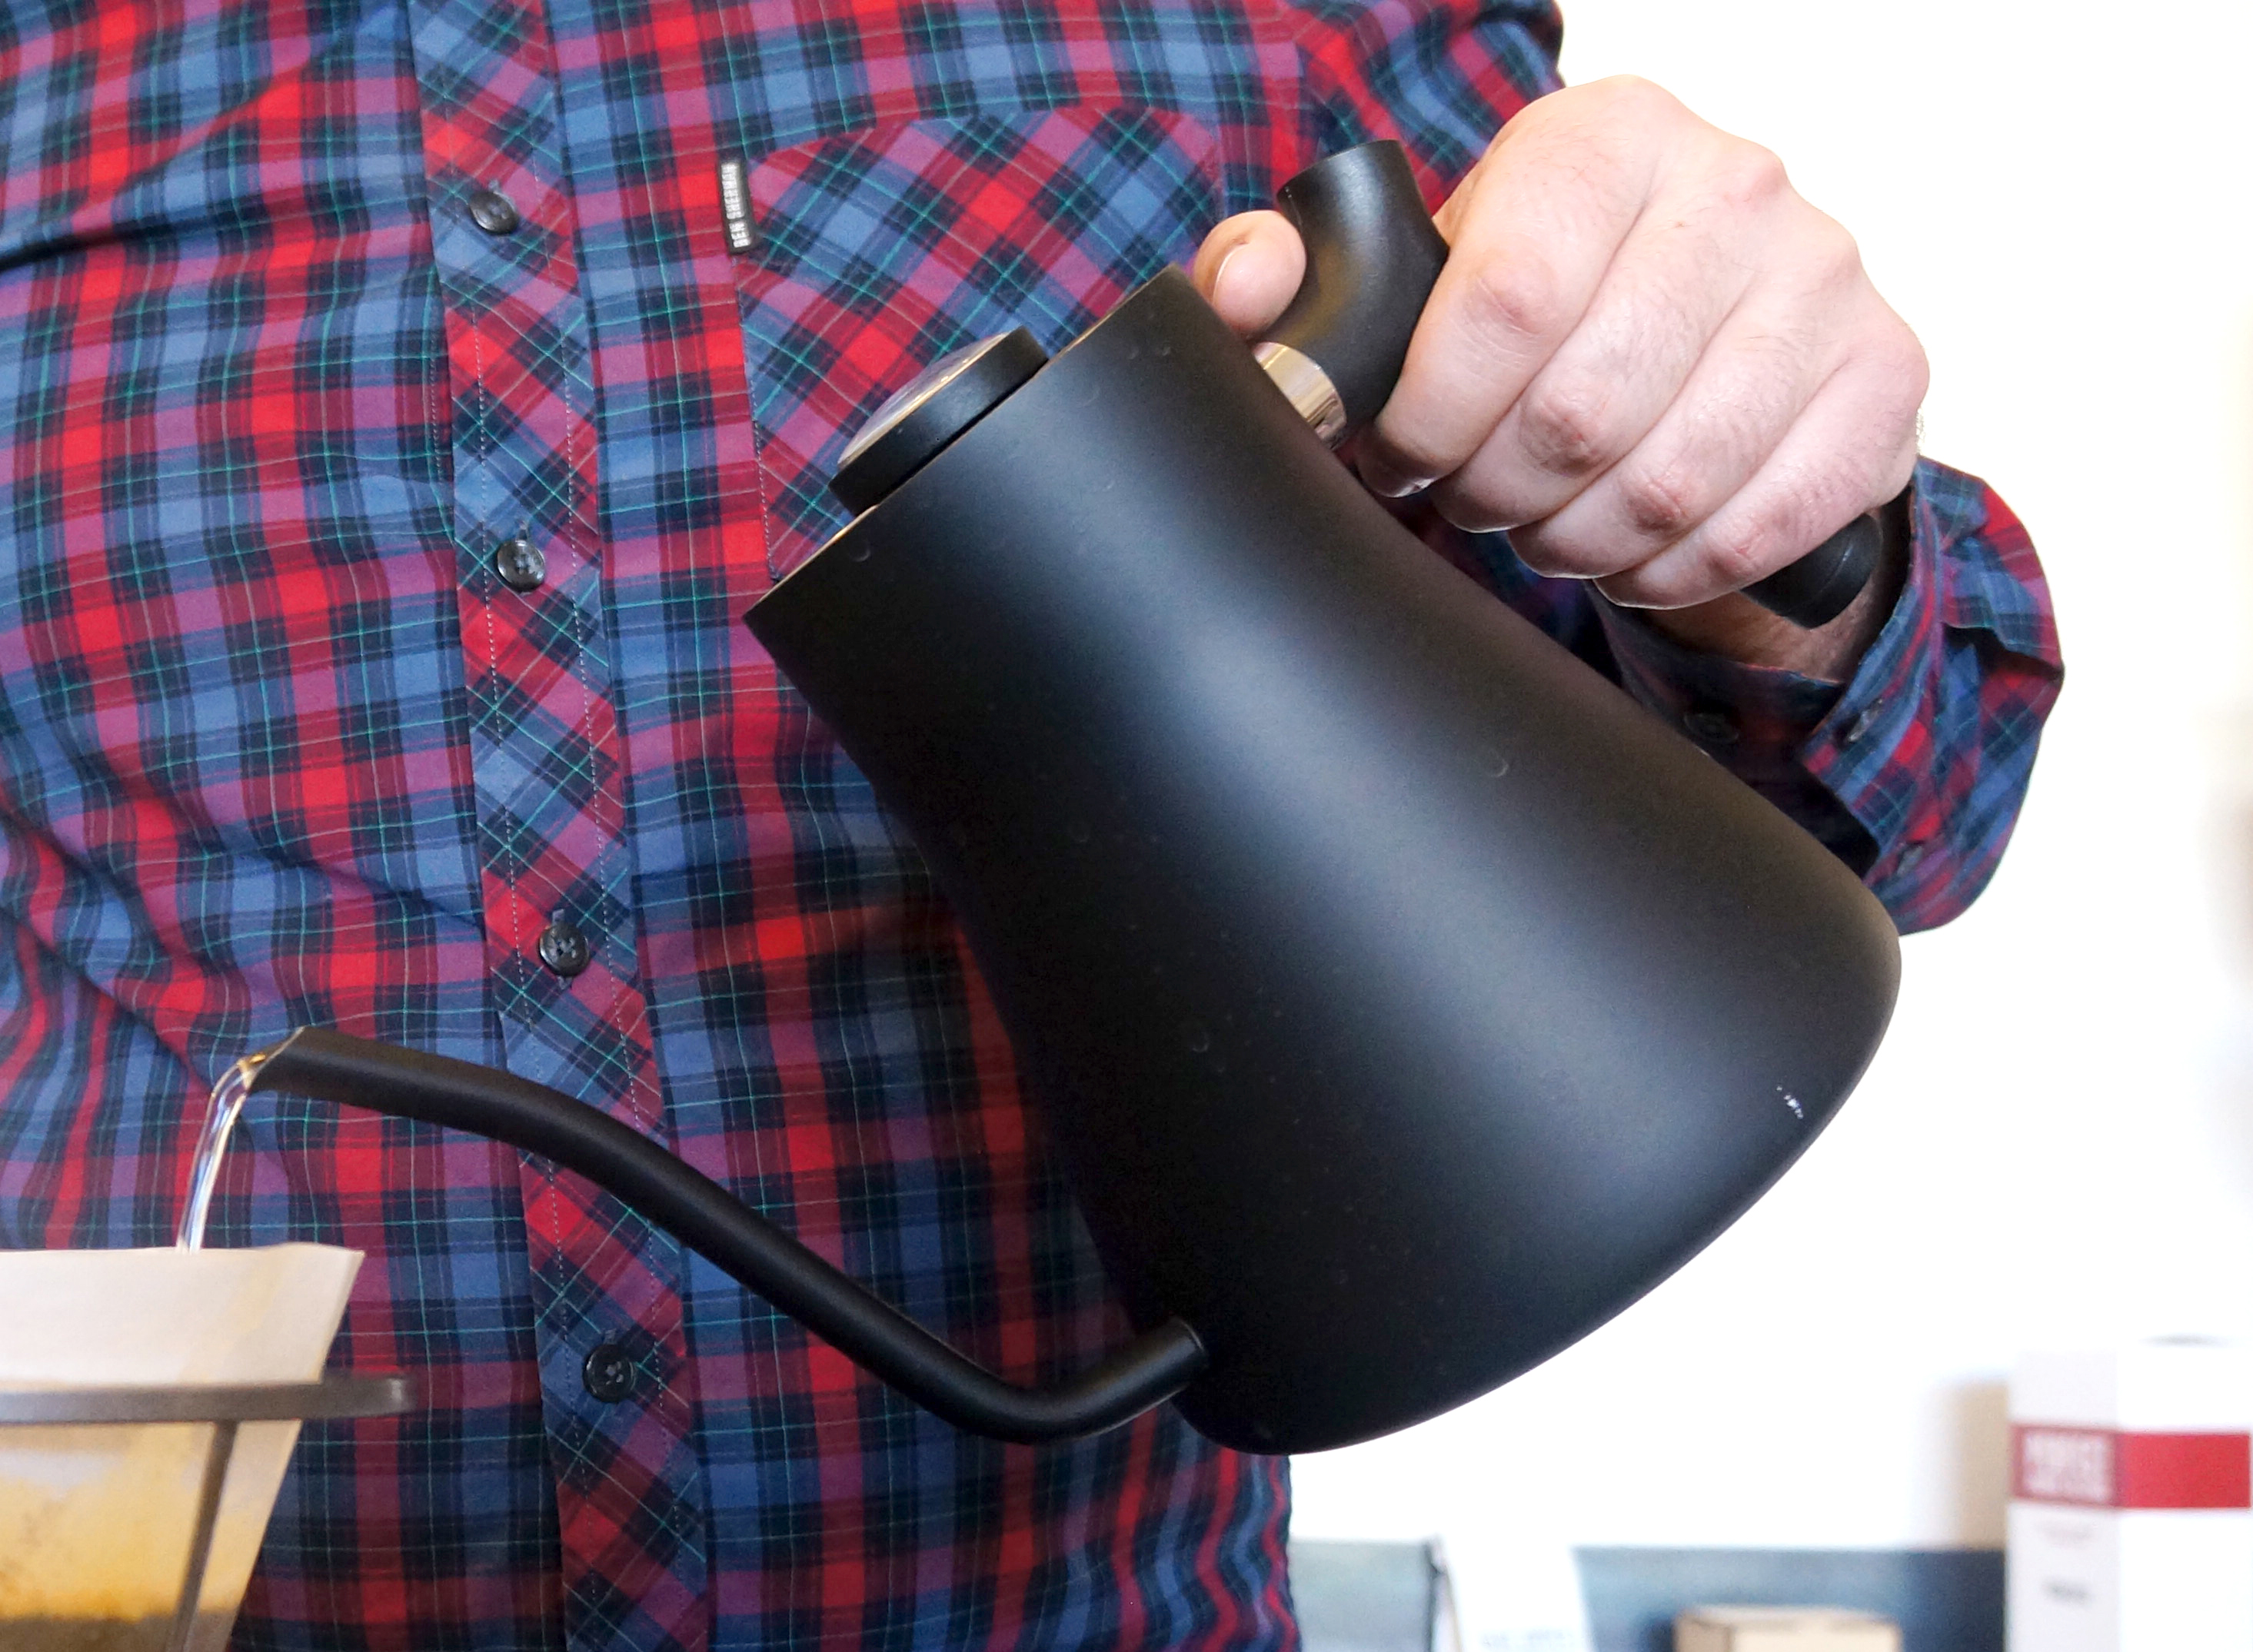 Fellow Products' Stagg-Kettle.